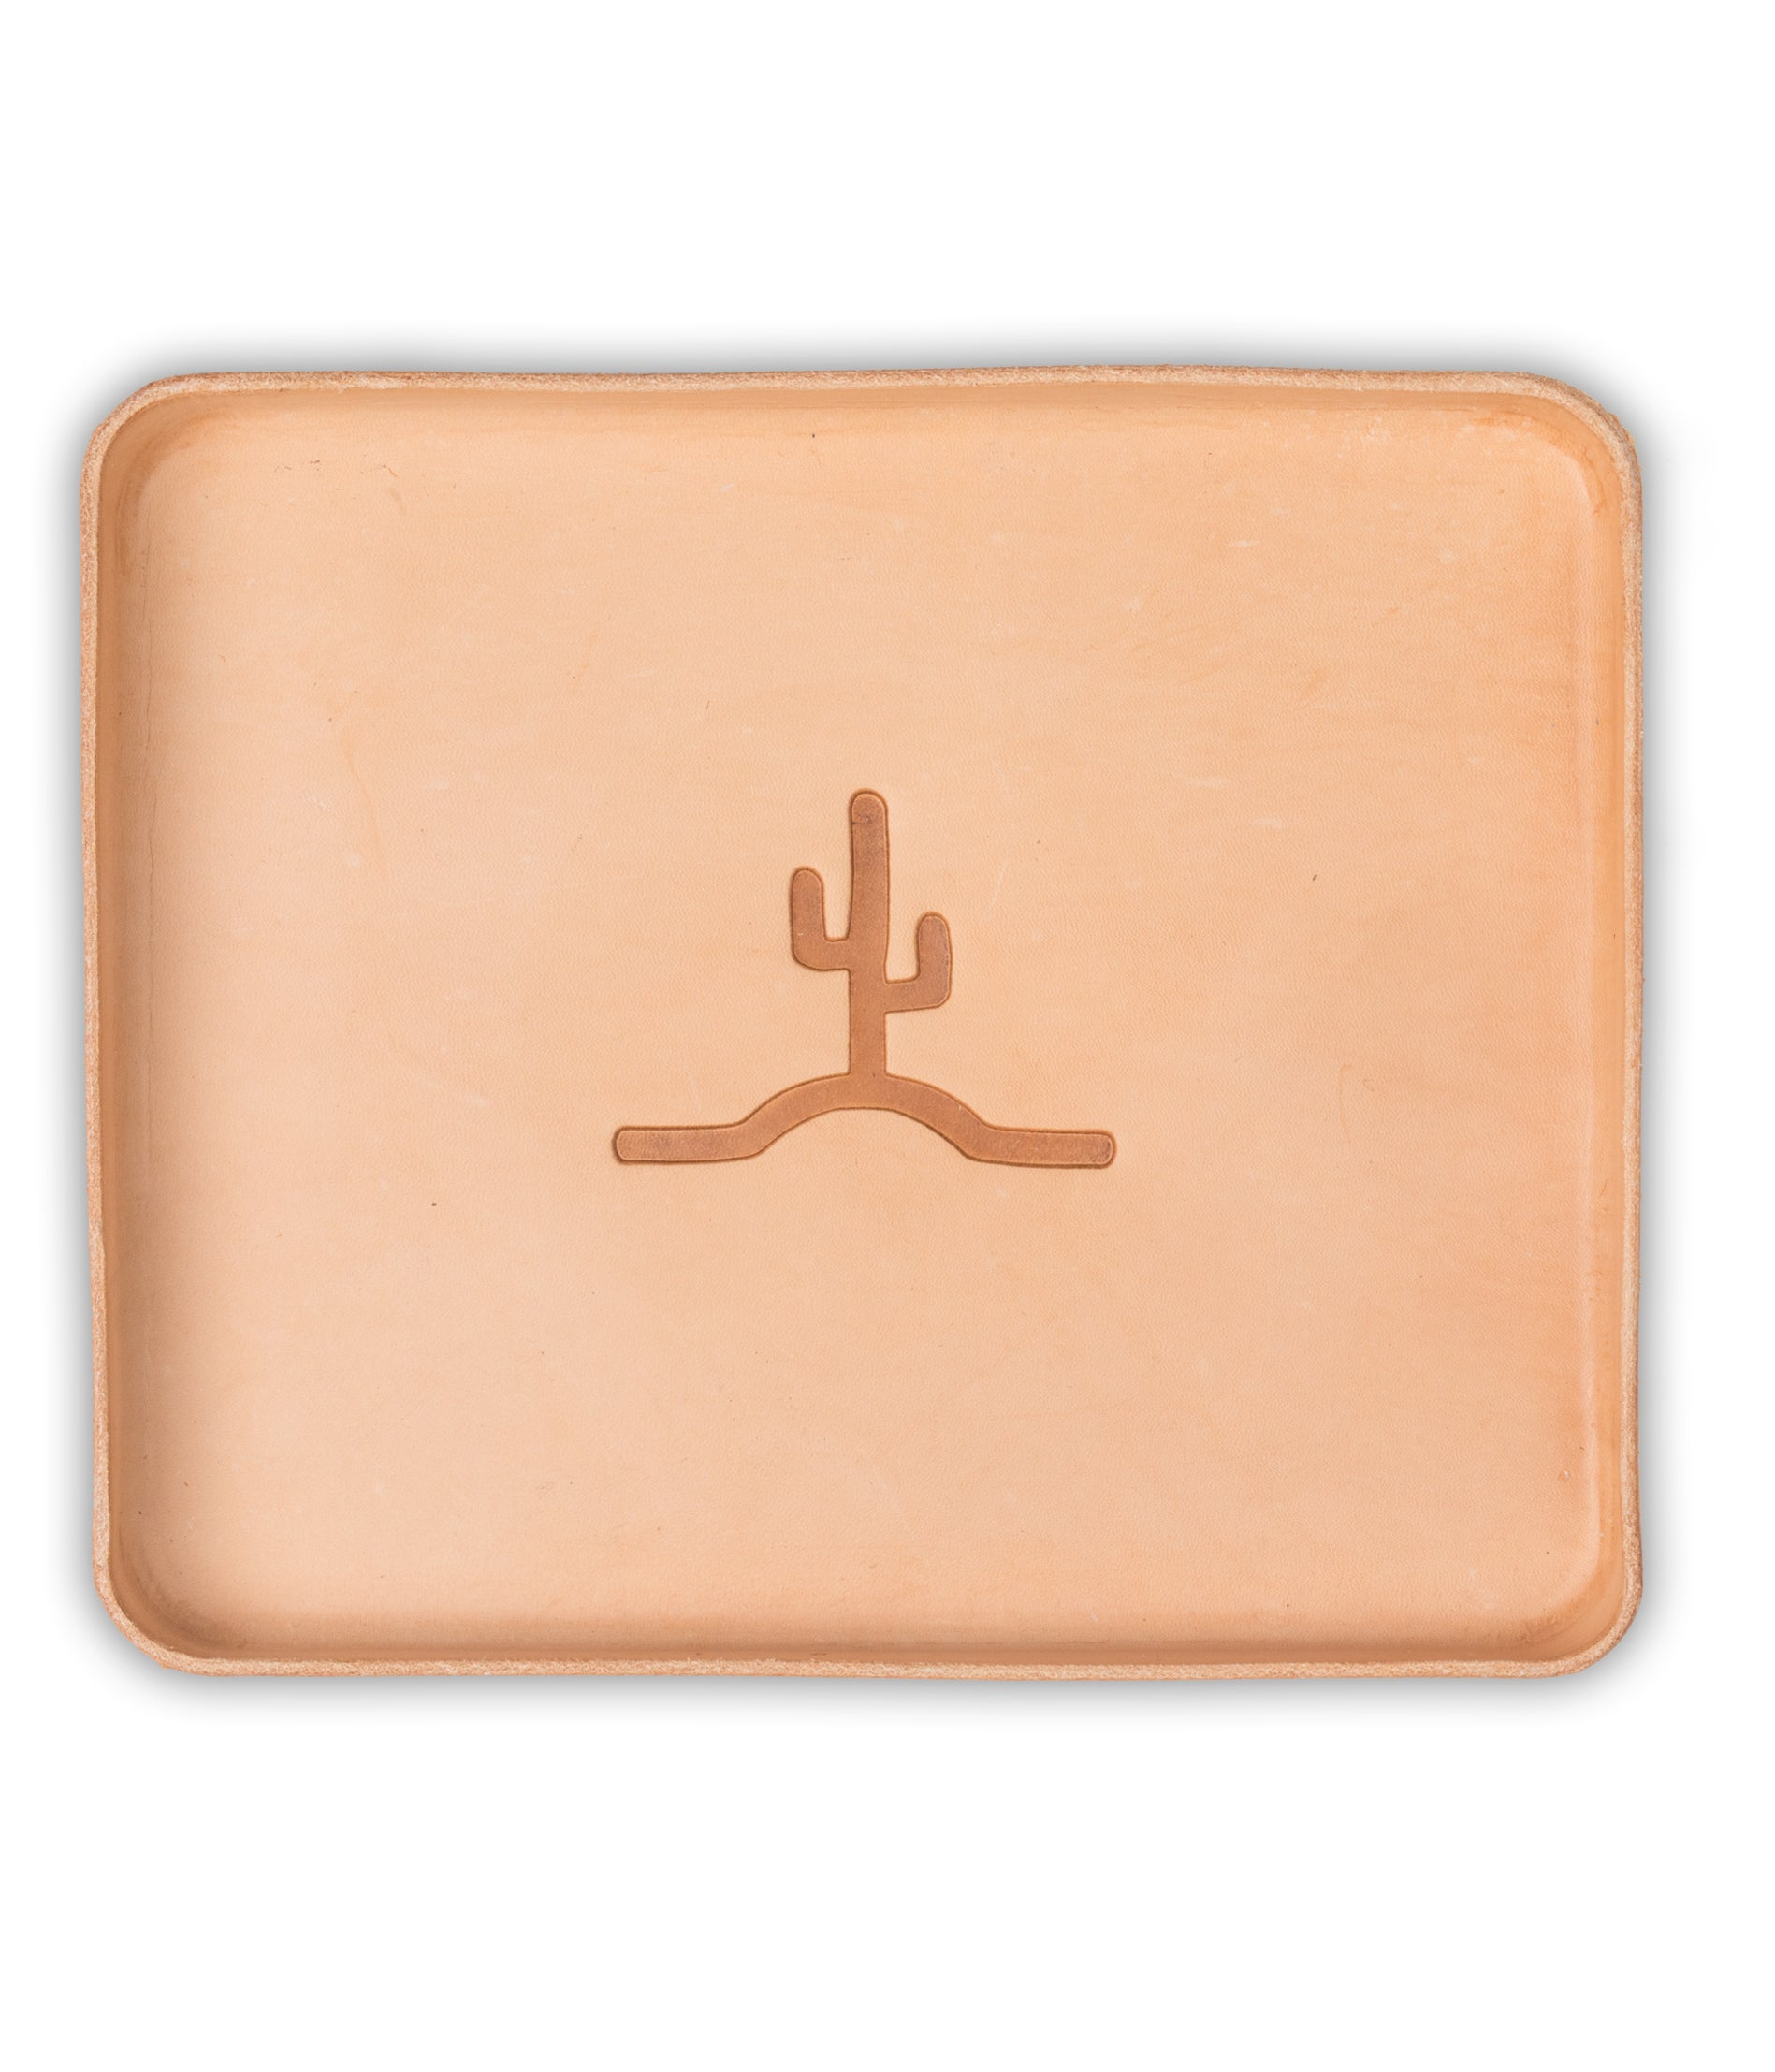 Flying Cactus Valet Tray :: PRESALE :: Delivery in January